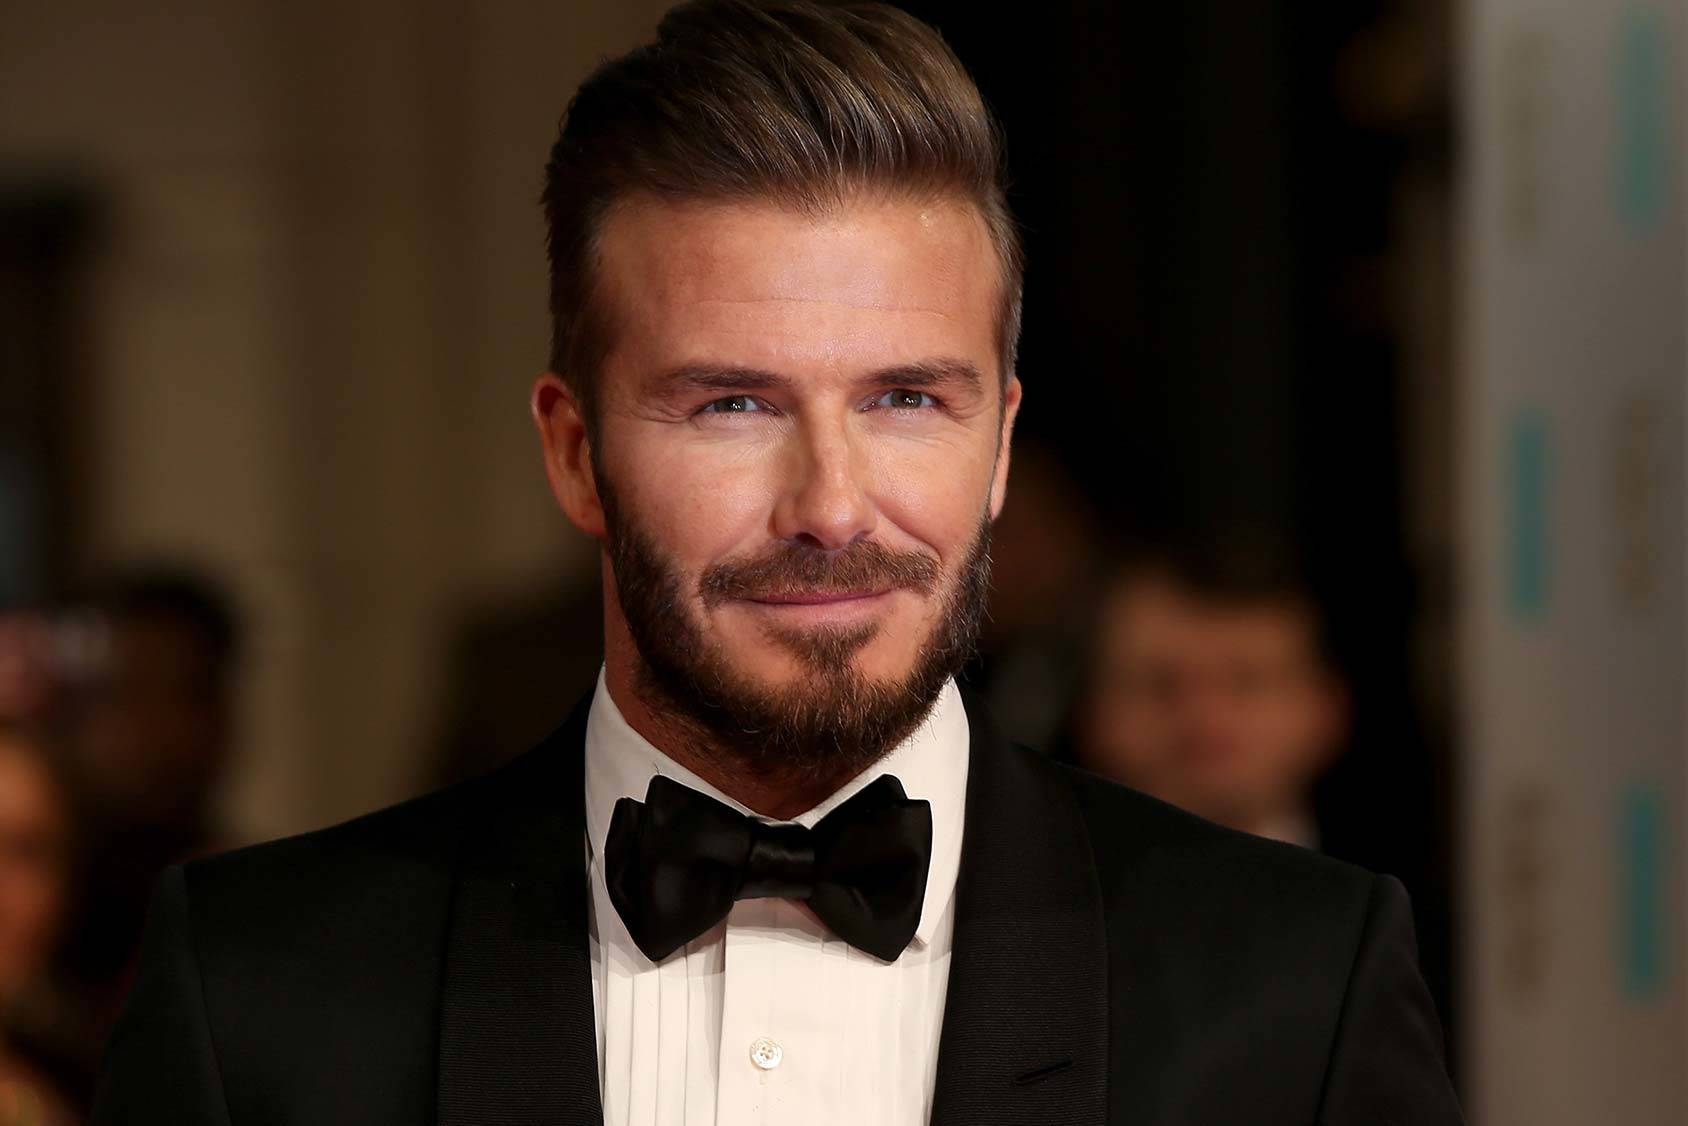 David Beckham turns 40 this weekend, Getty Images.